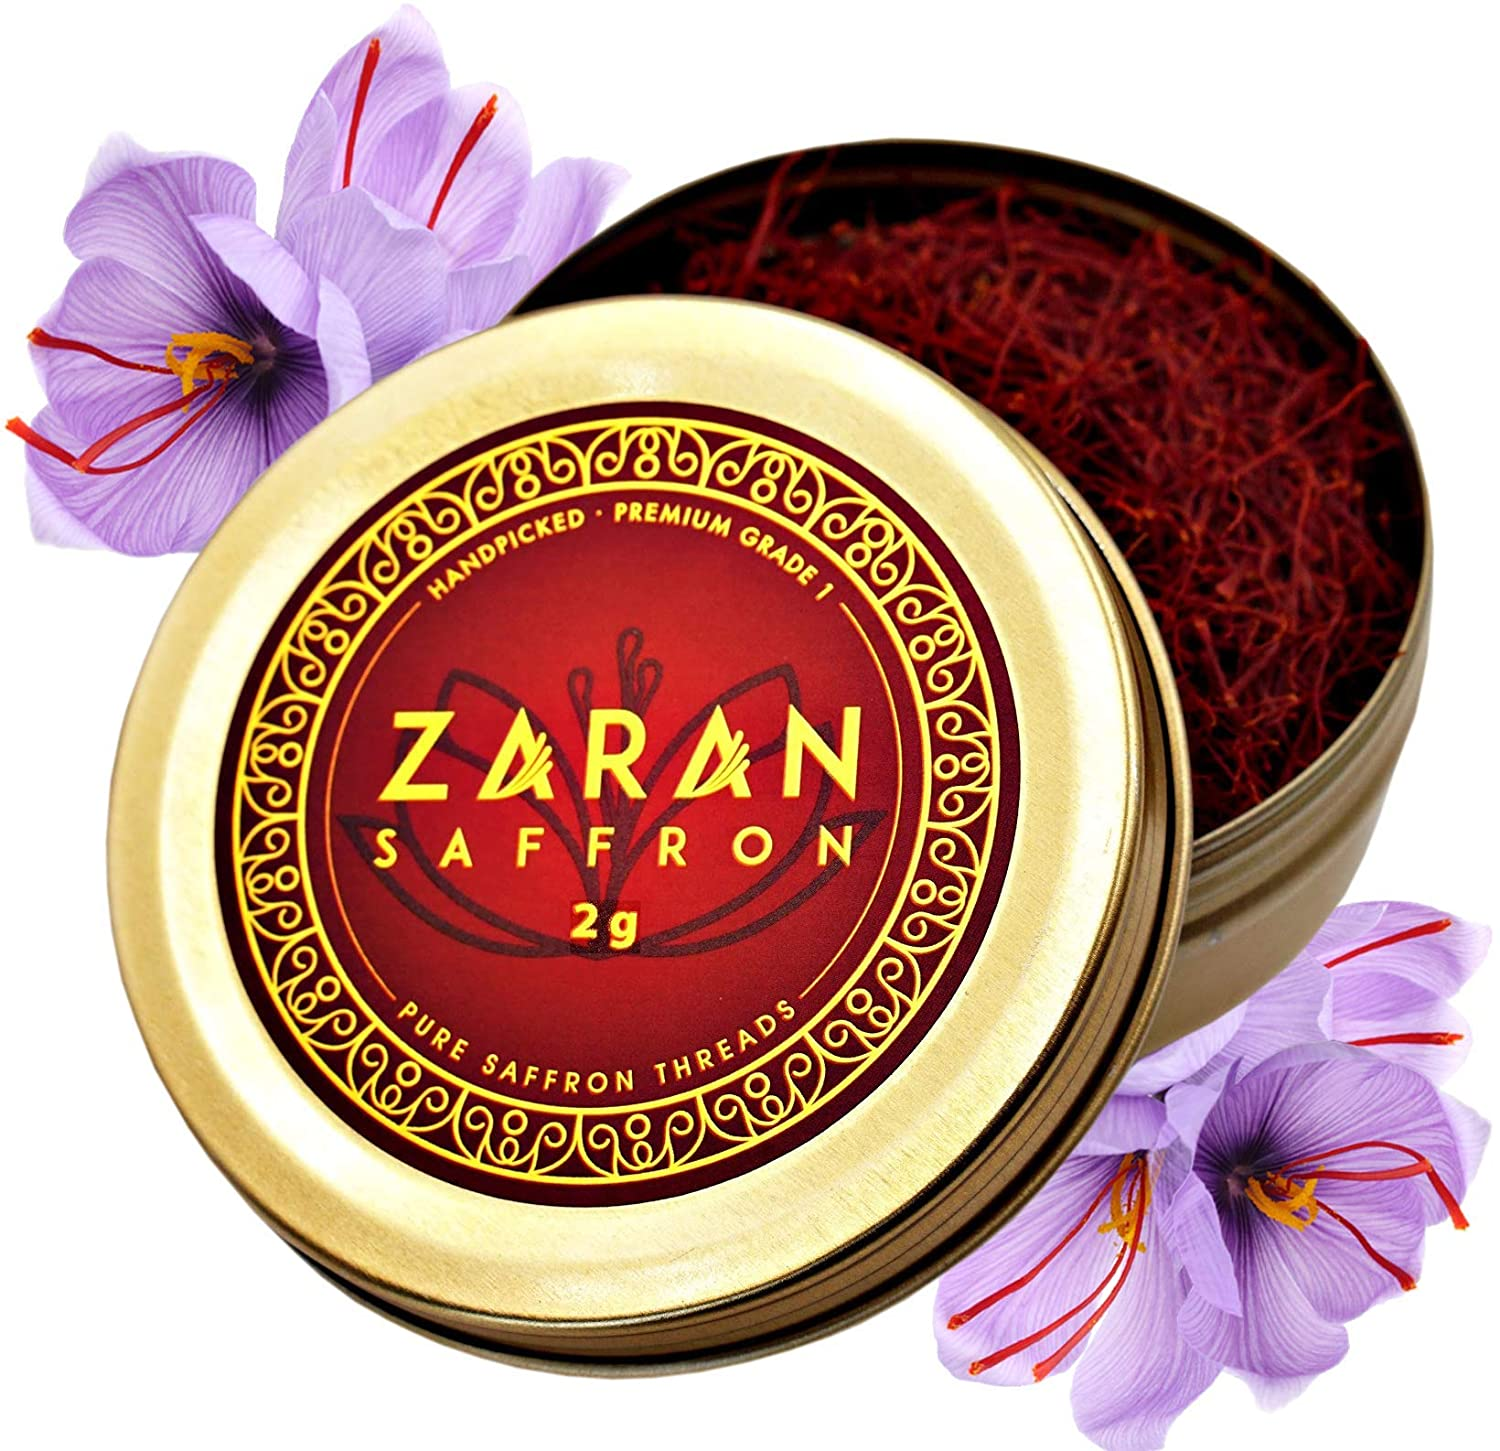 Zaran Saffron, Superior Saffron Threads (Premium) All-Red Saffron Spice (Highest Quality Saffron for your Paella